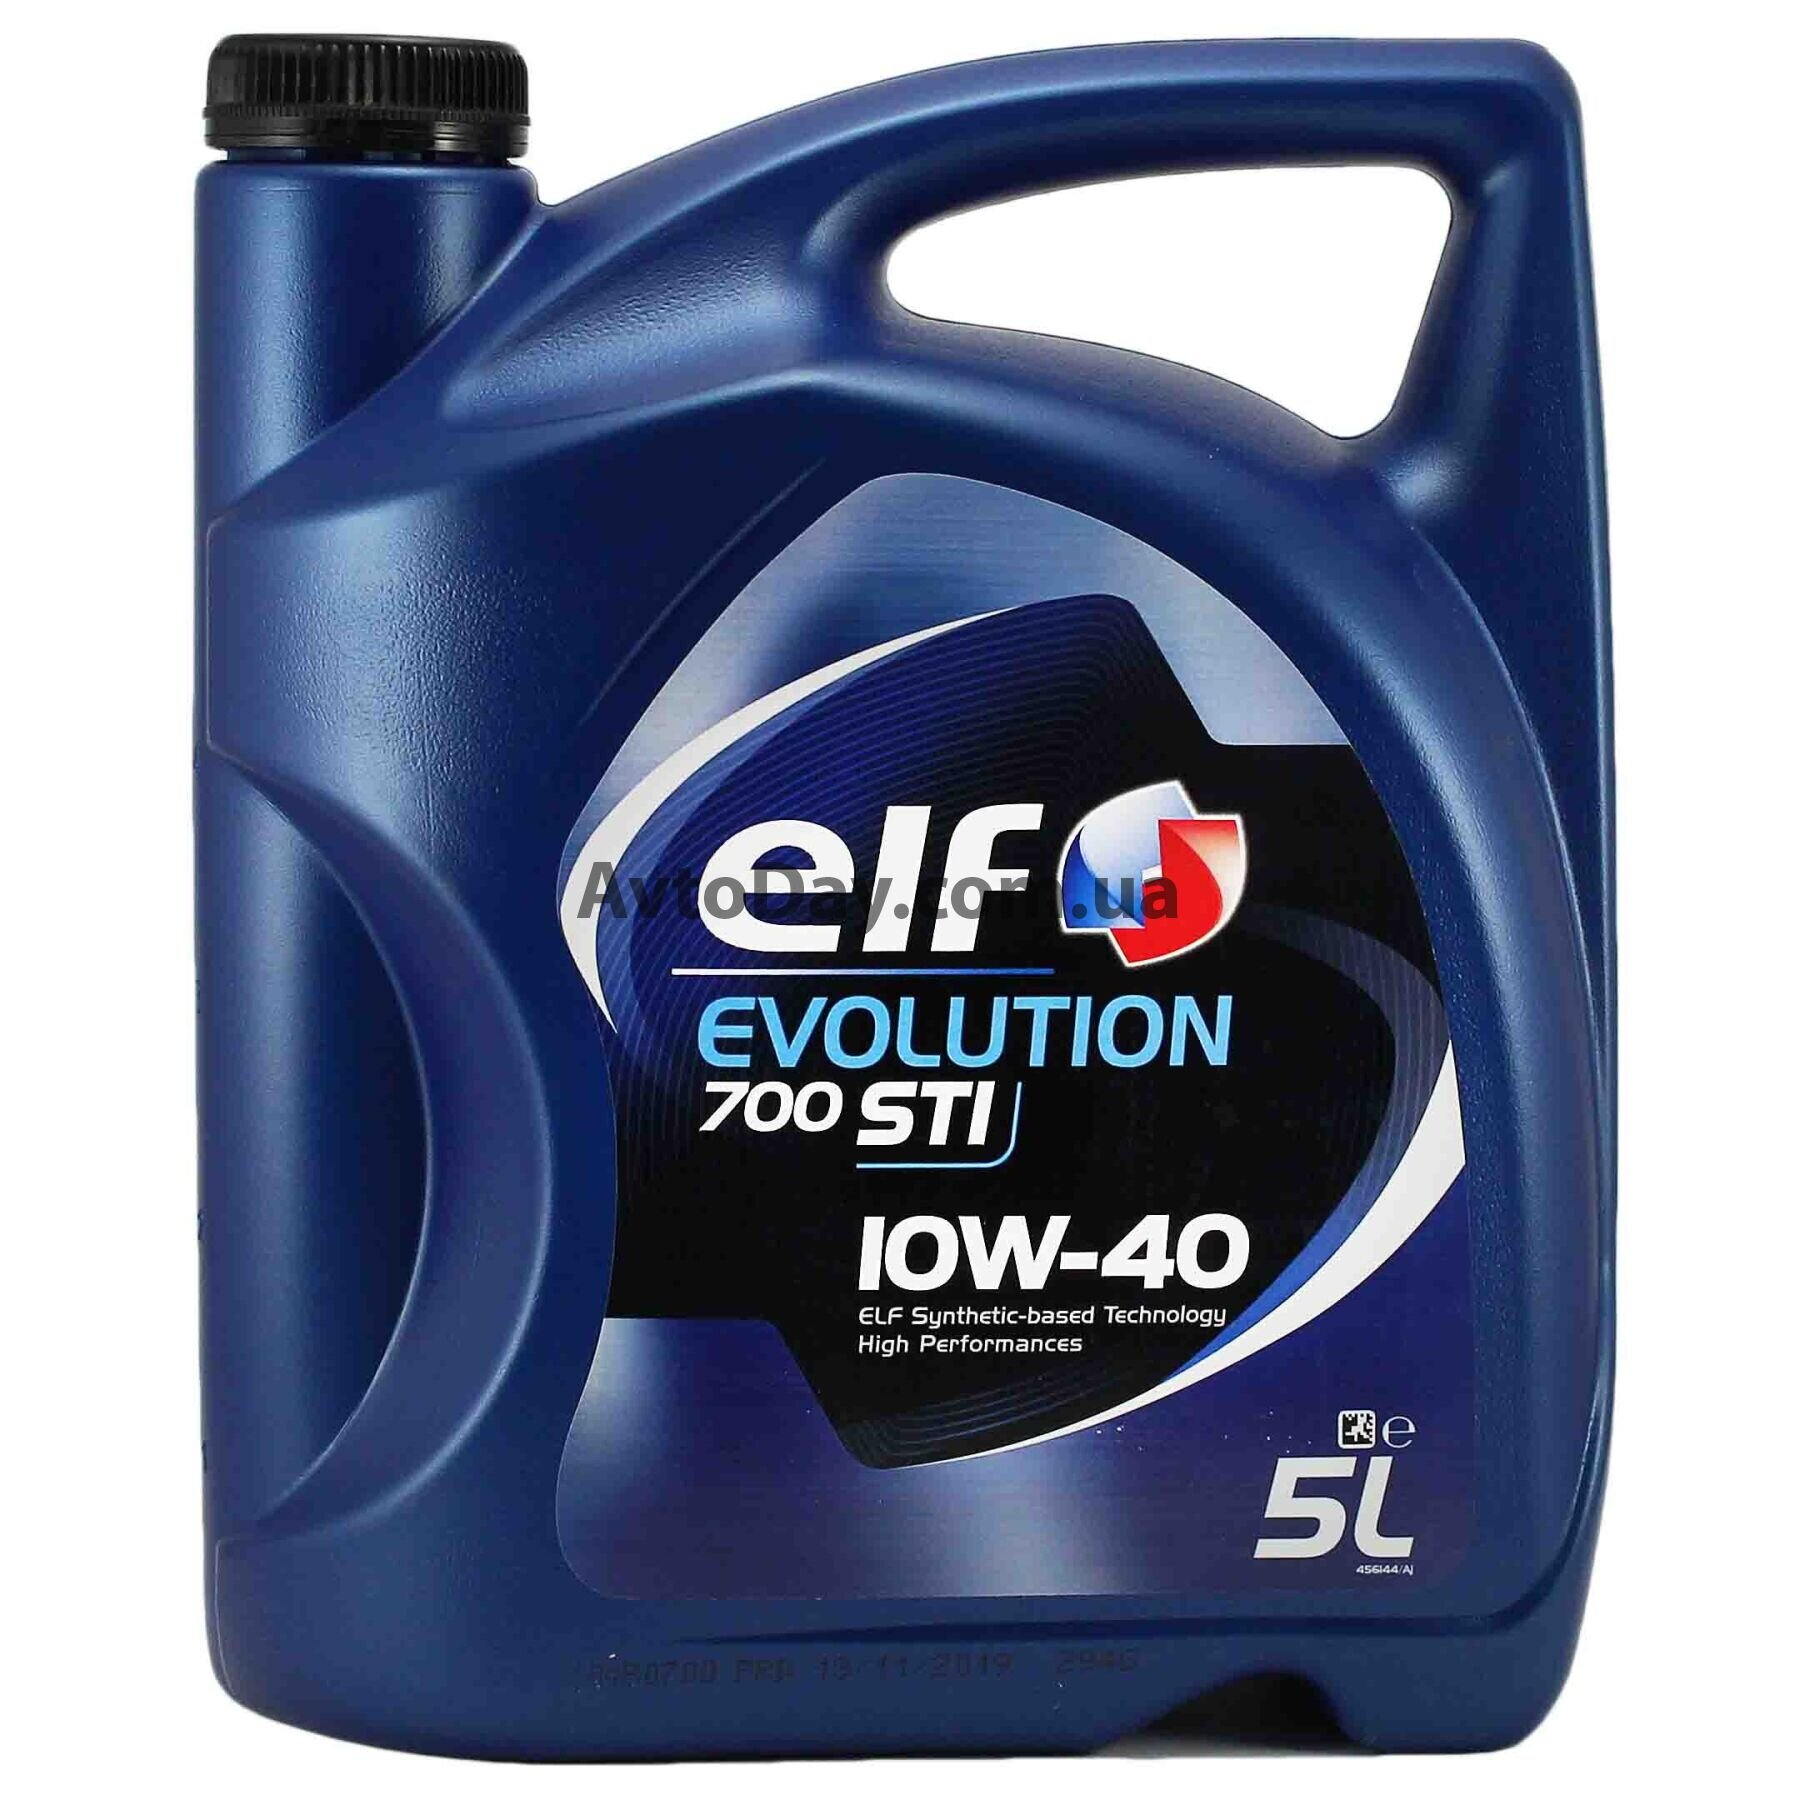 Моторное масло Elf Evolution 700 STI 10W-40 5 л. 1